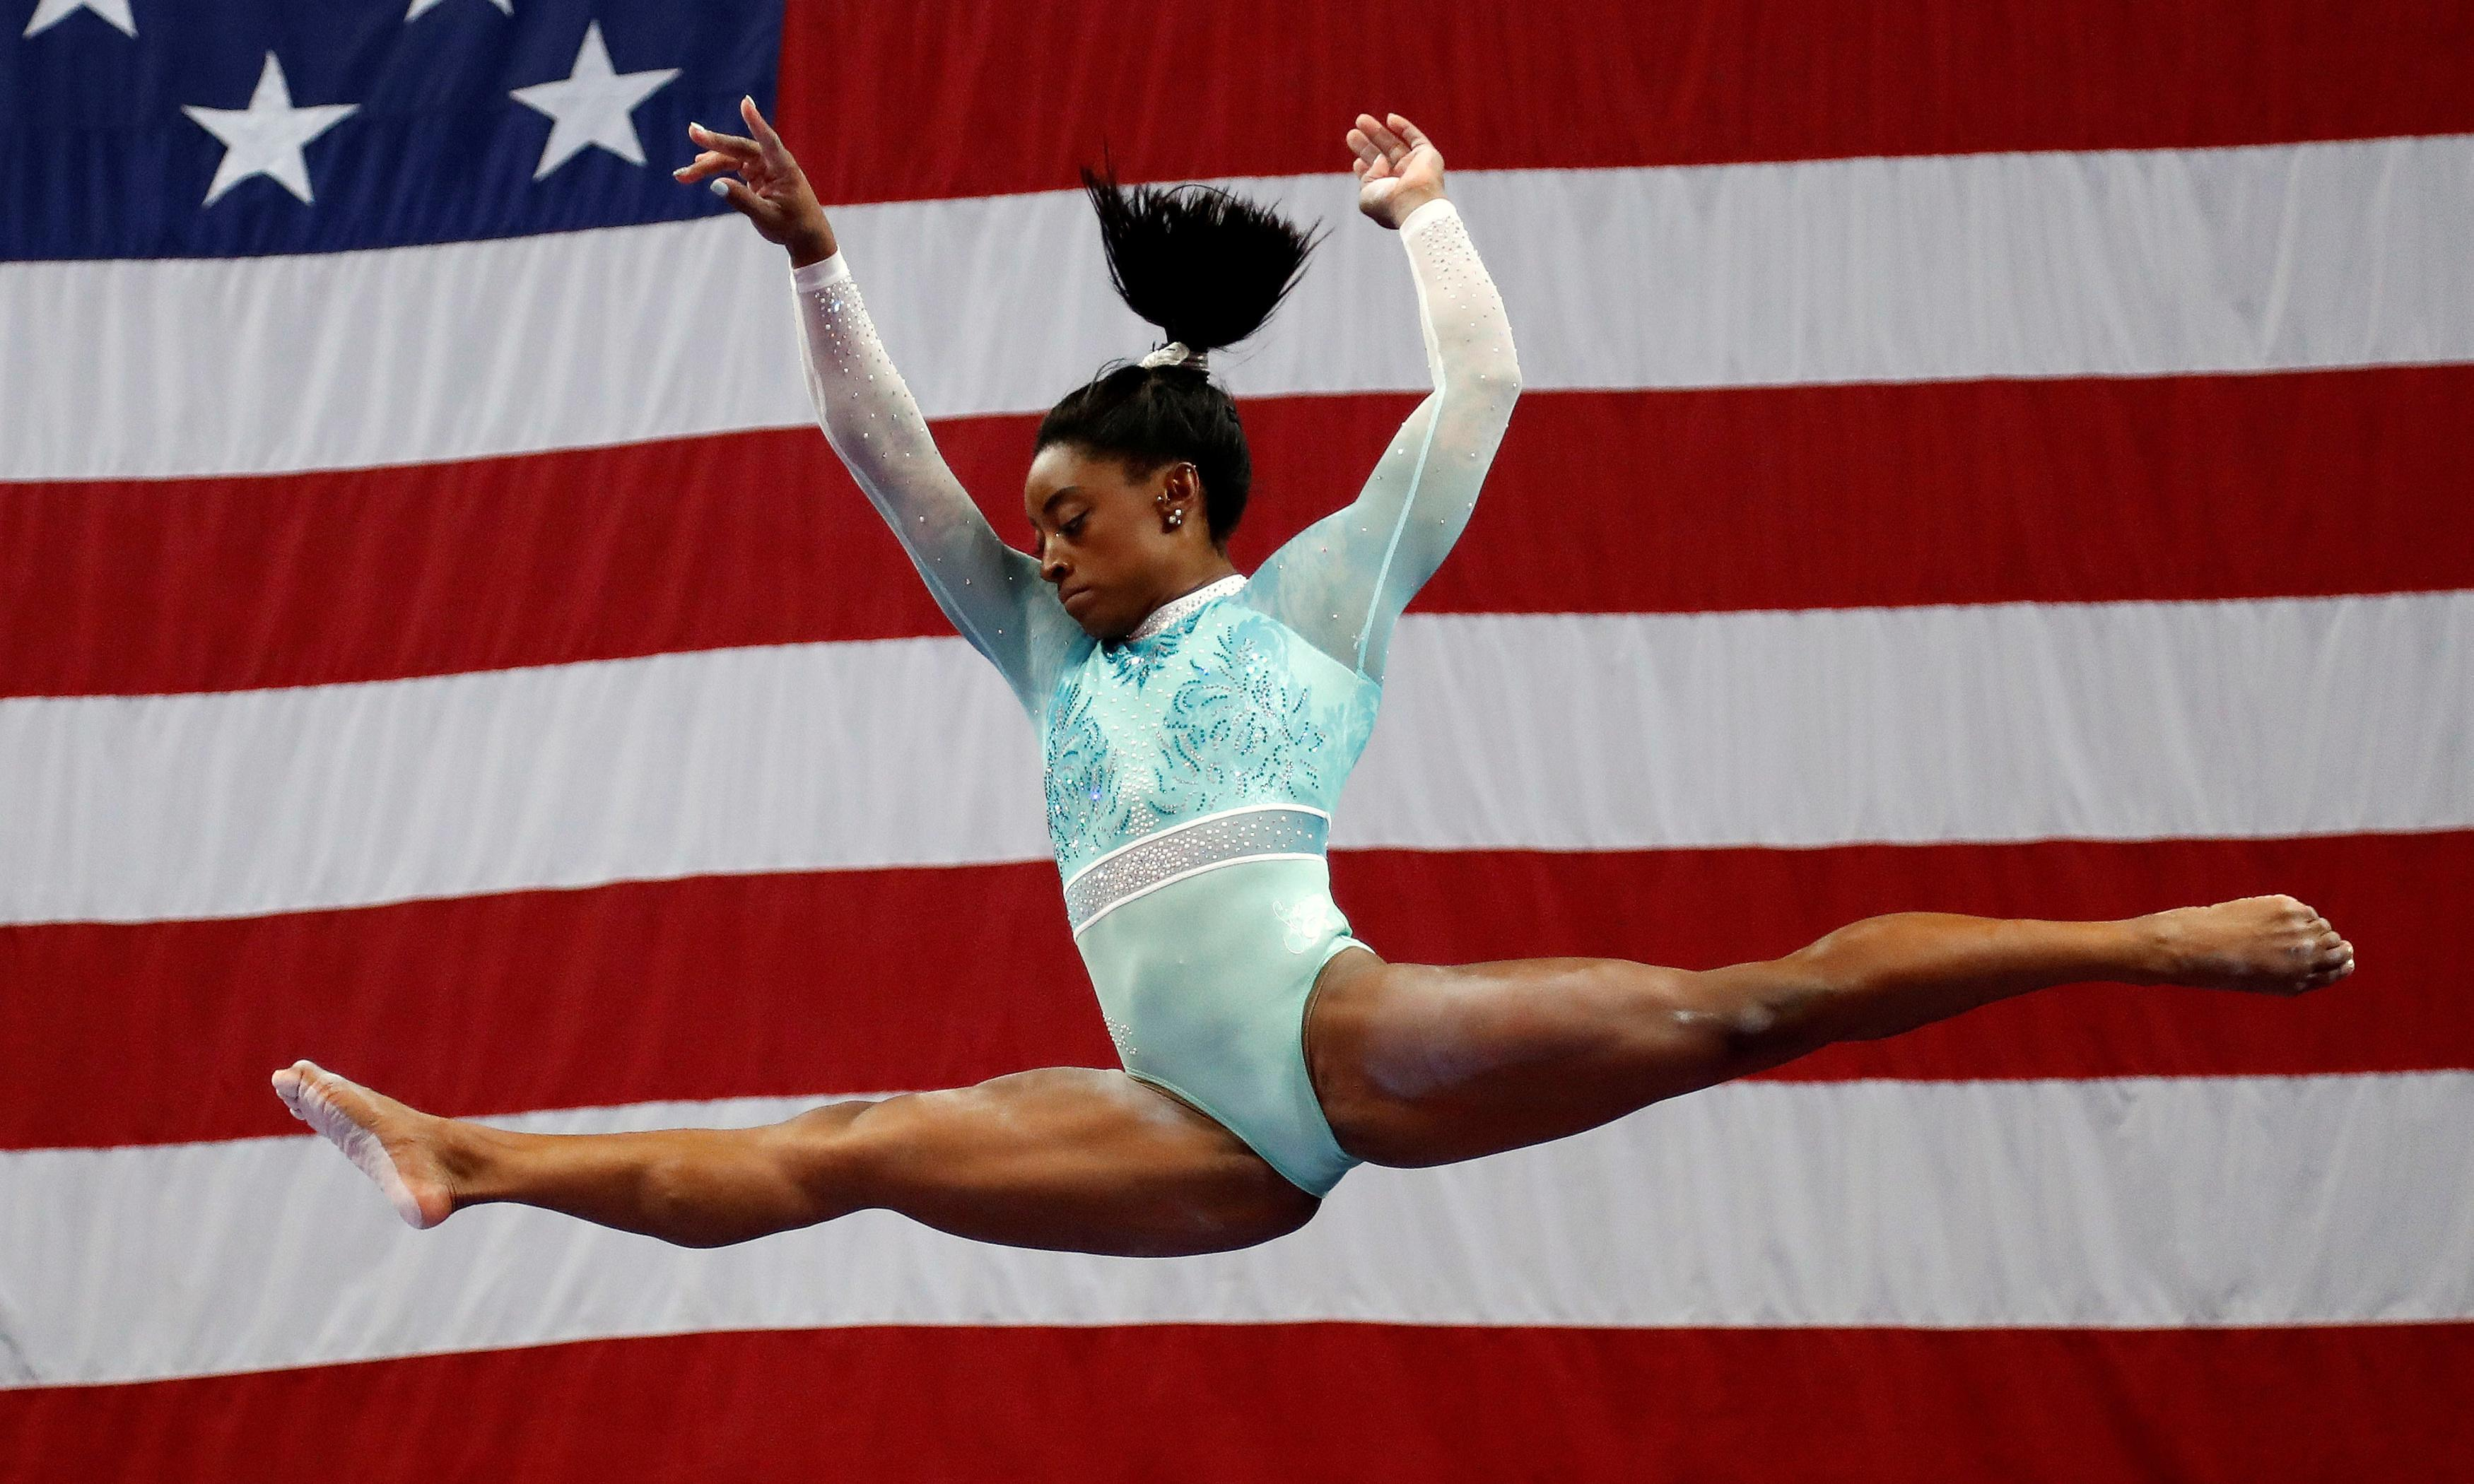 15 months on from Larry Nassar, USA Gymnastics struggles to find its way